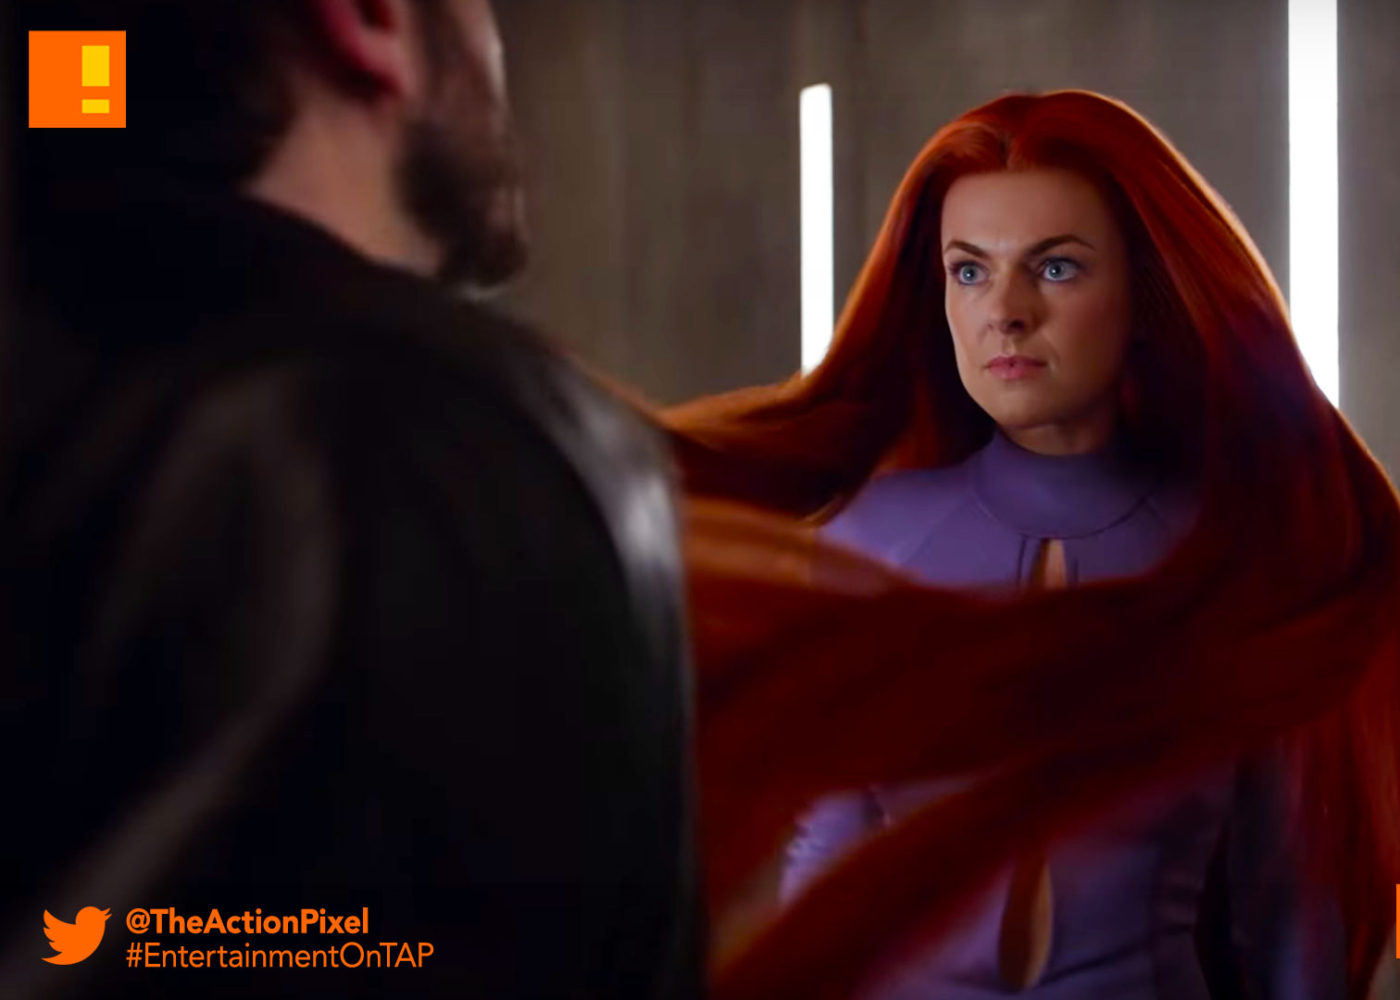 sdcc , trailer, imax, inhumans, Black Bolt, Medusa, Maximus,poster, marvel, imax, the inhumans, marvel's inhumans,the action pixel, entertainment on tap, poster,